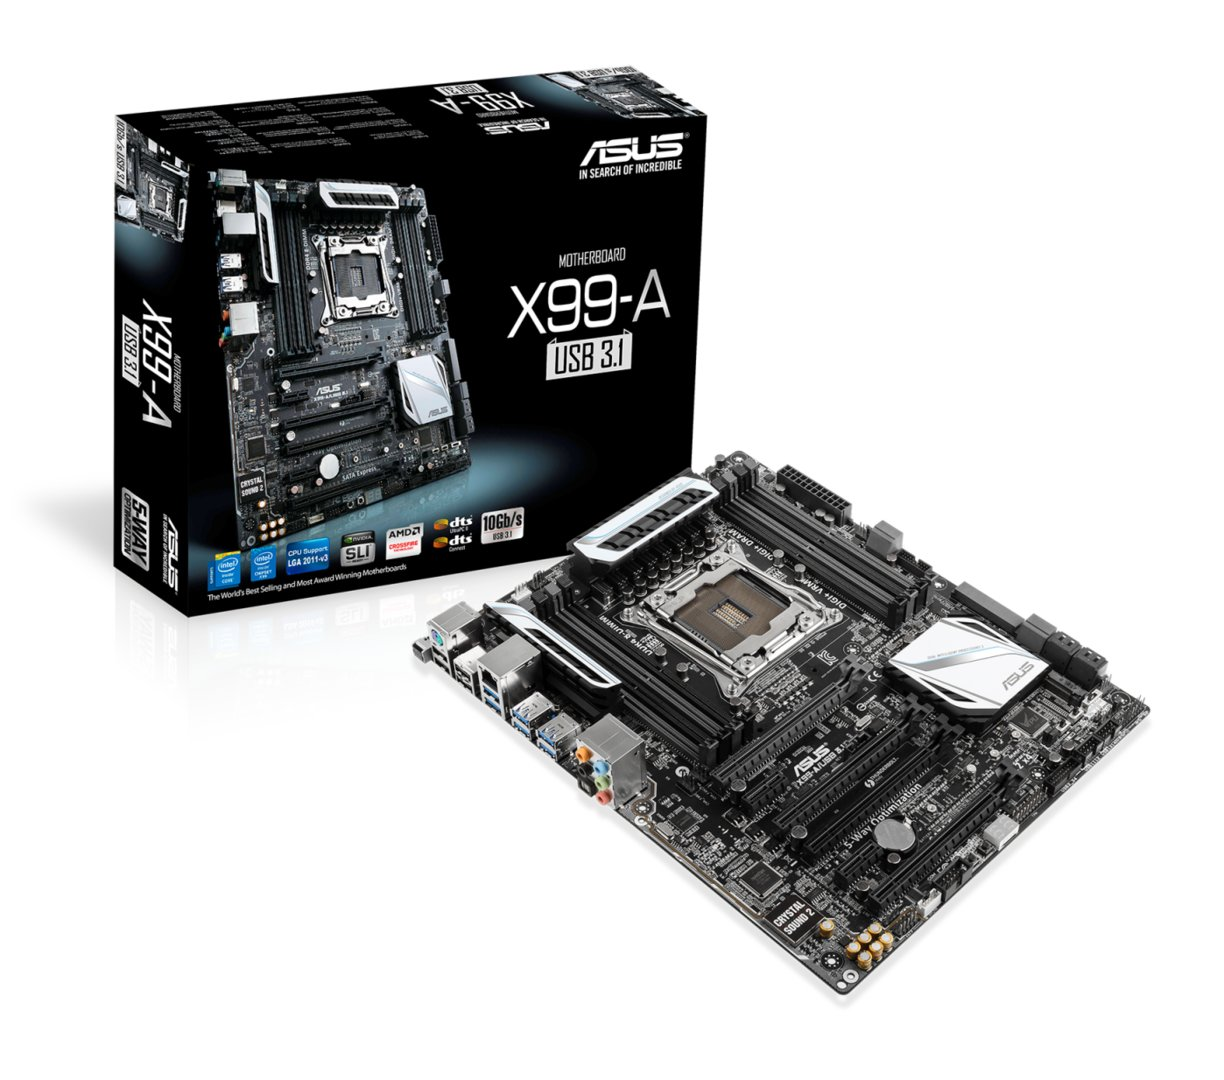 Asus X99-A mit USB 3.1 Onboard